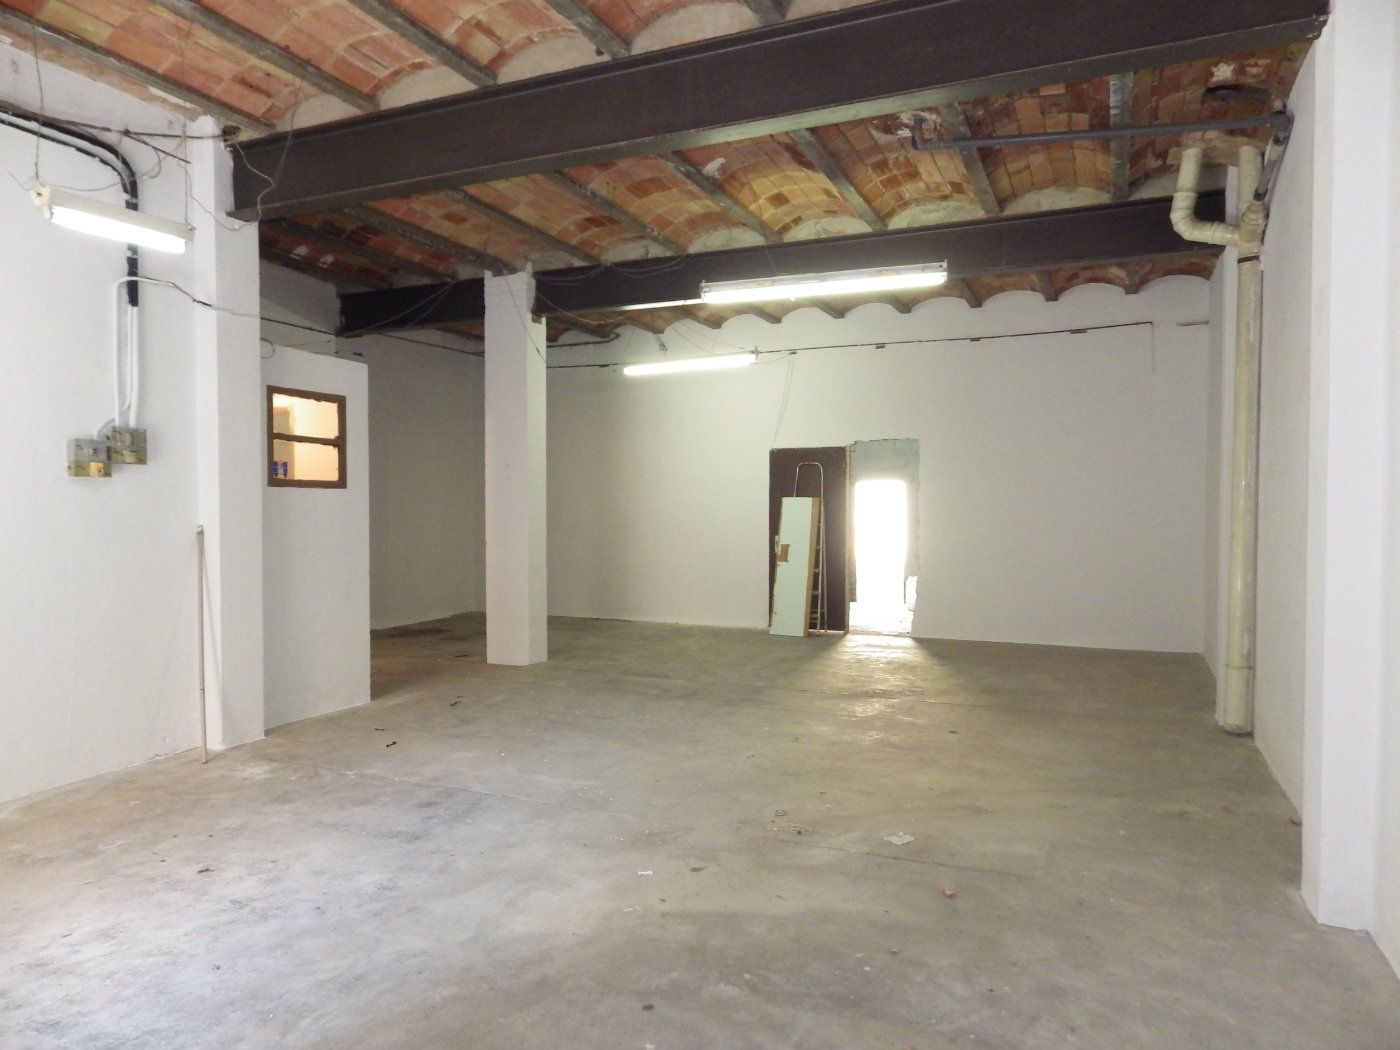 Rent Business premise in C/ miquel de palol, 4. Ideal per taller o magatzem